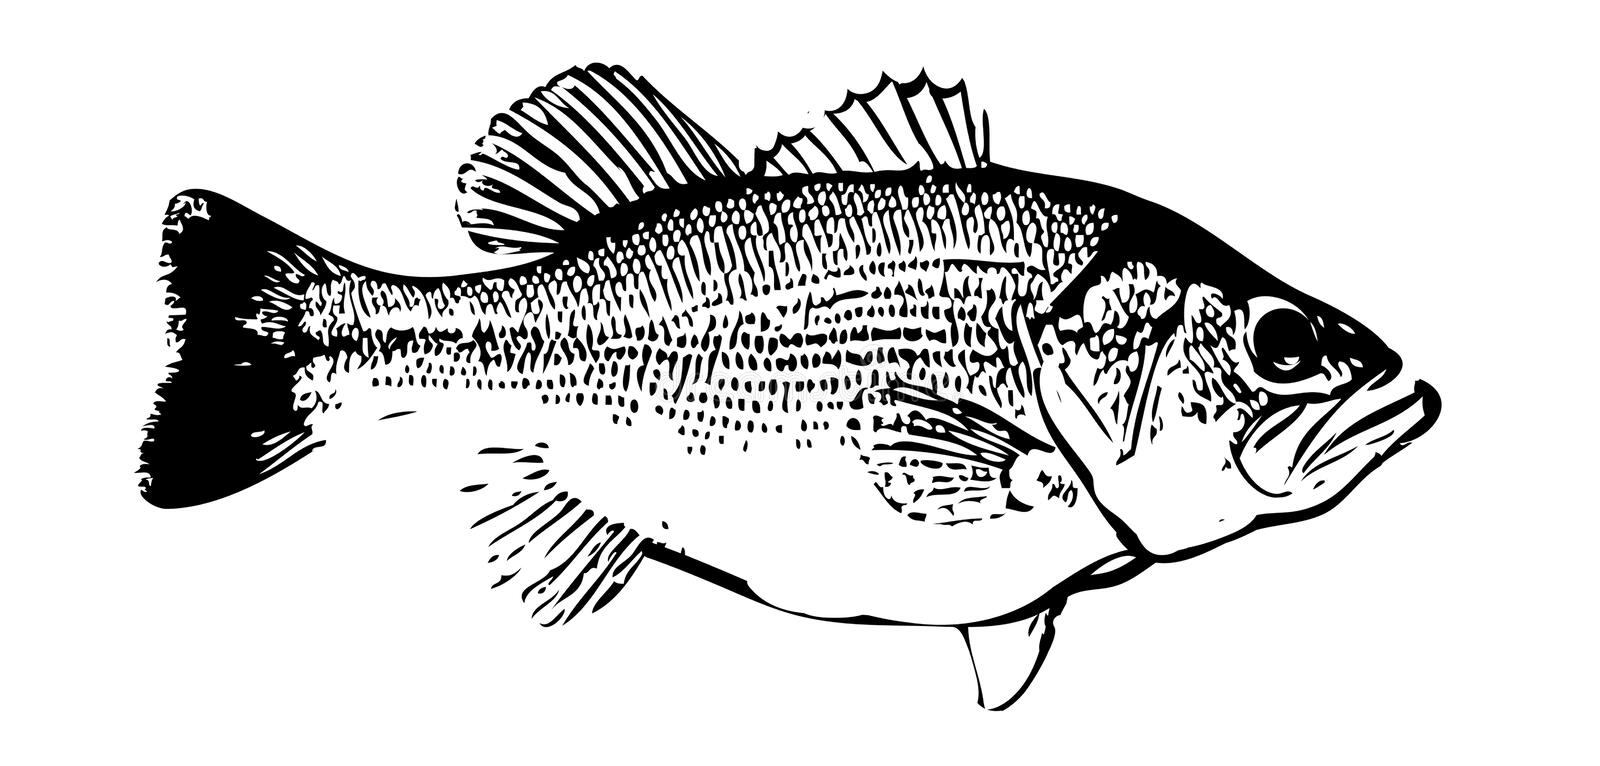 IlIlustration of largemouth bass fish on white backgorund royalty free illustration